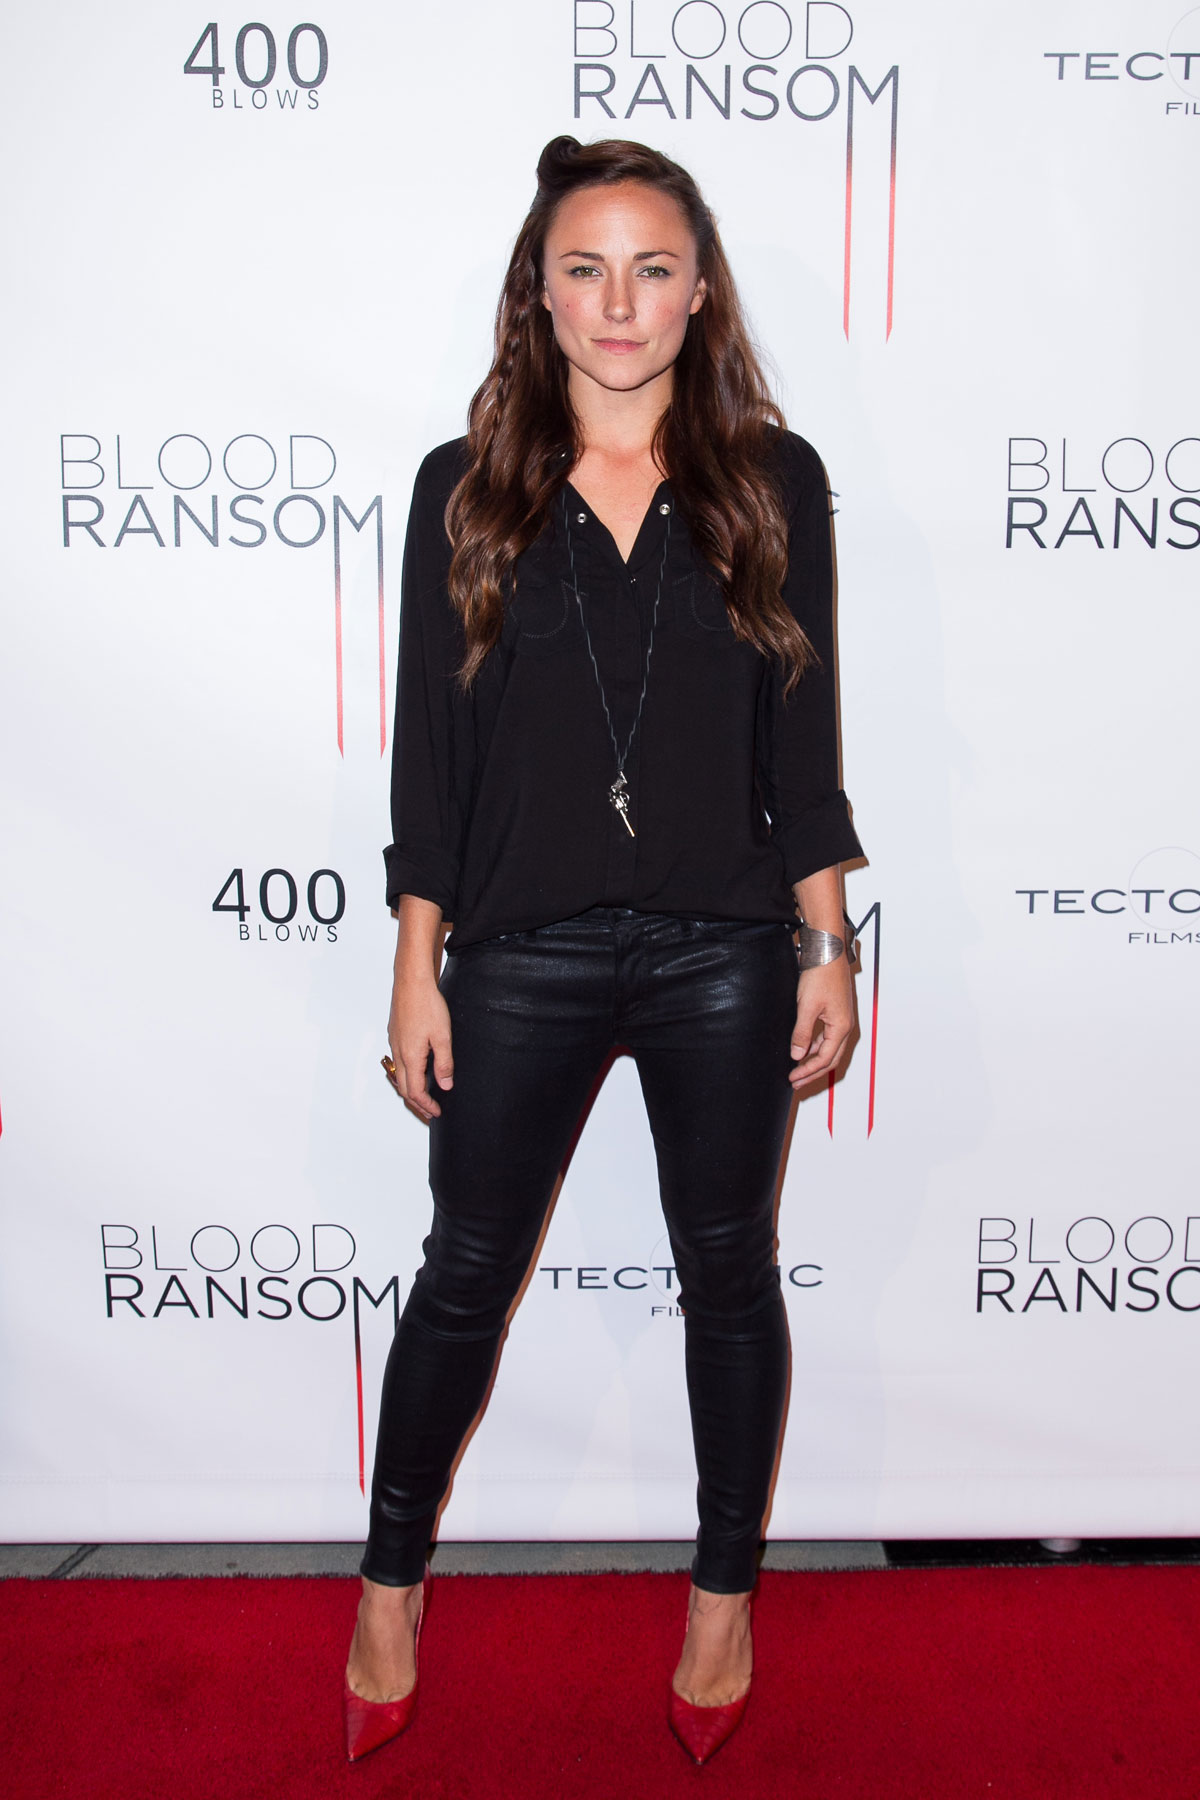 Briana Evigan attends Premiere of Blood Ransom Los Angeles premiere